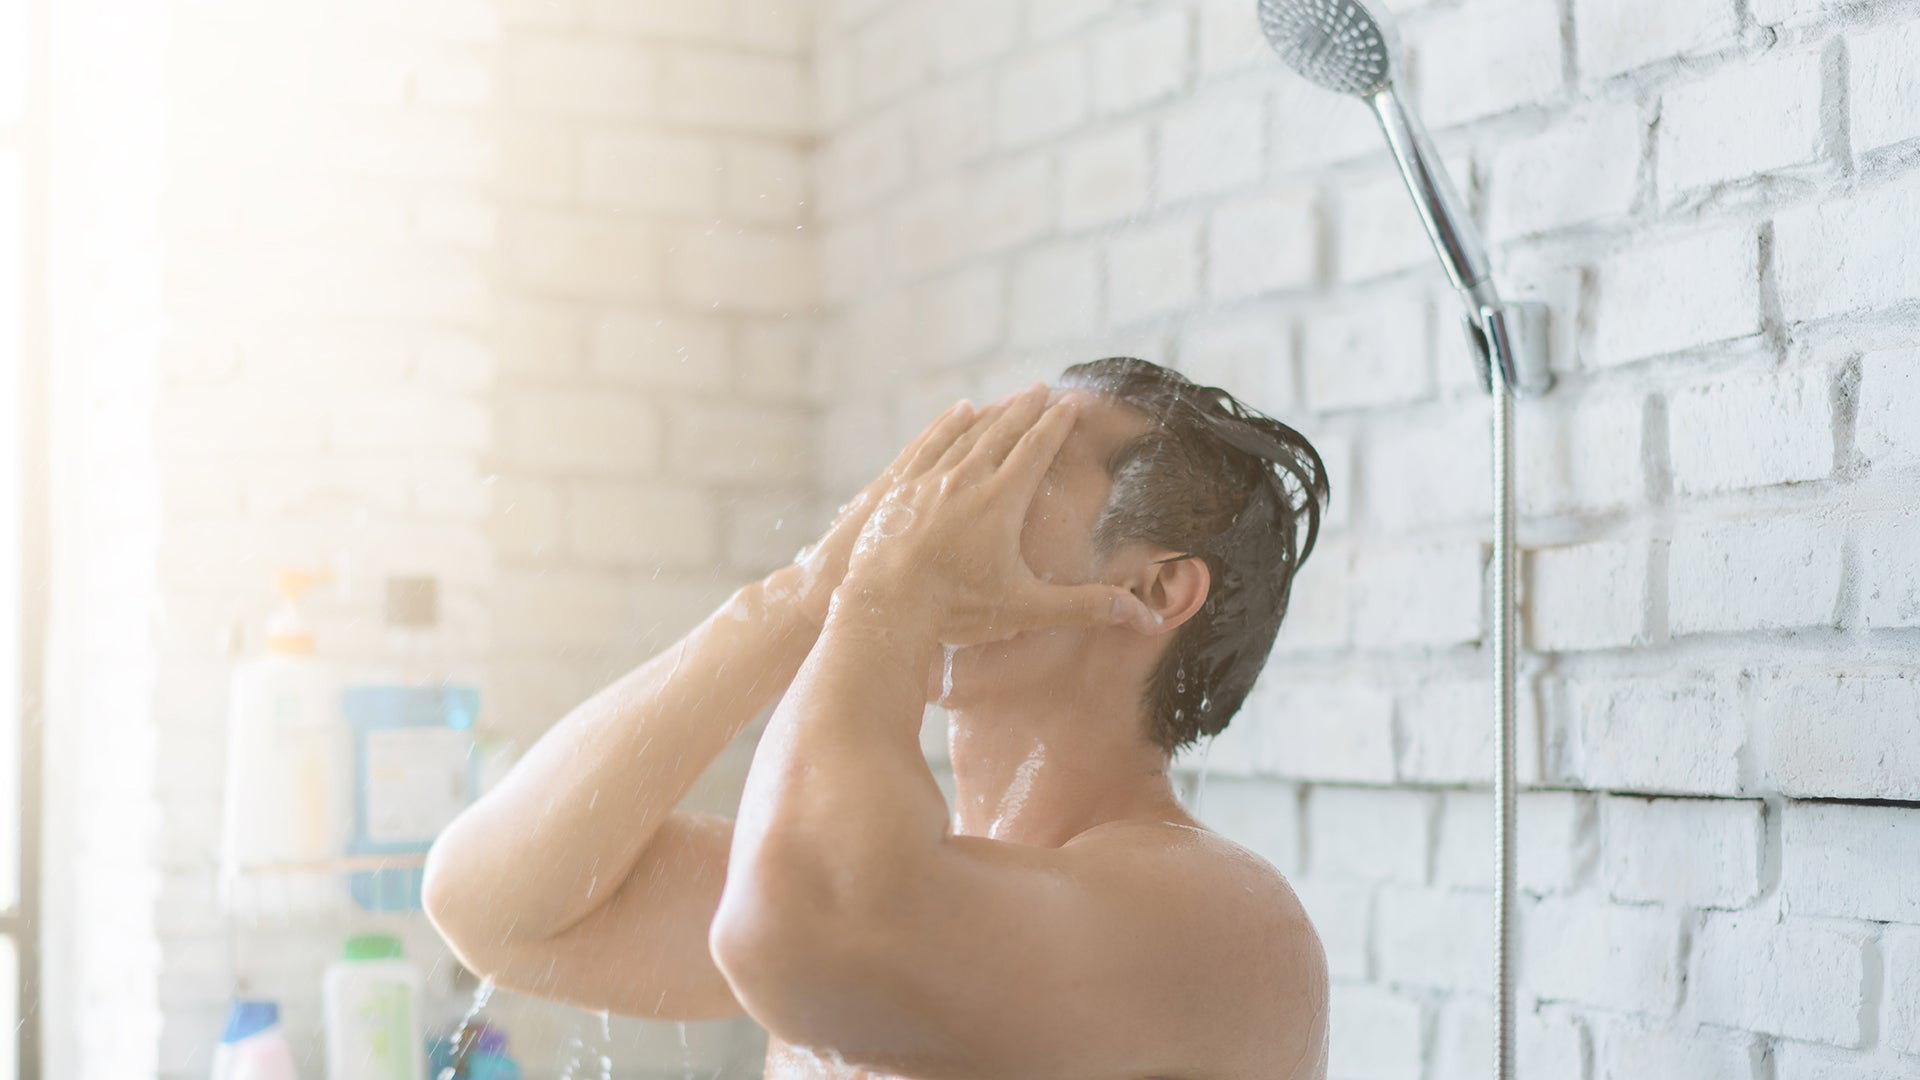 Avoid Hot Water Shower - Sensitive Skin Care Tip by Cinthol Awesome Men